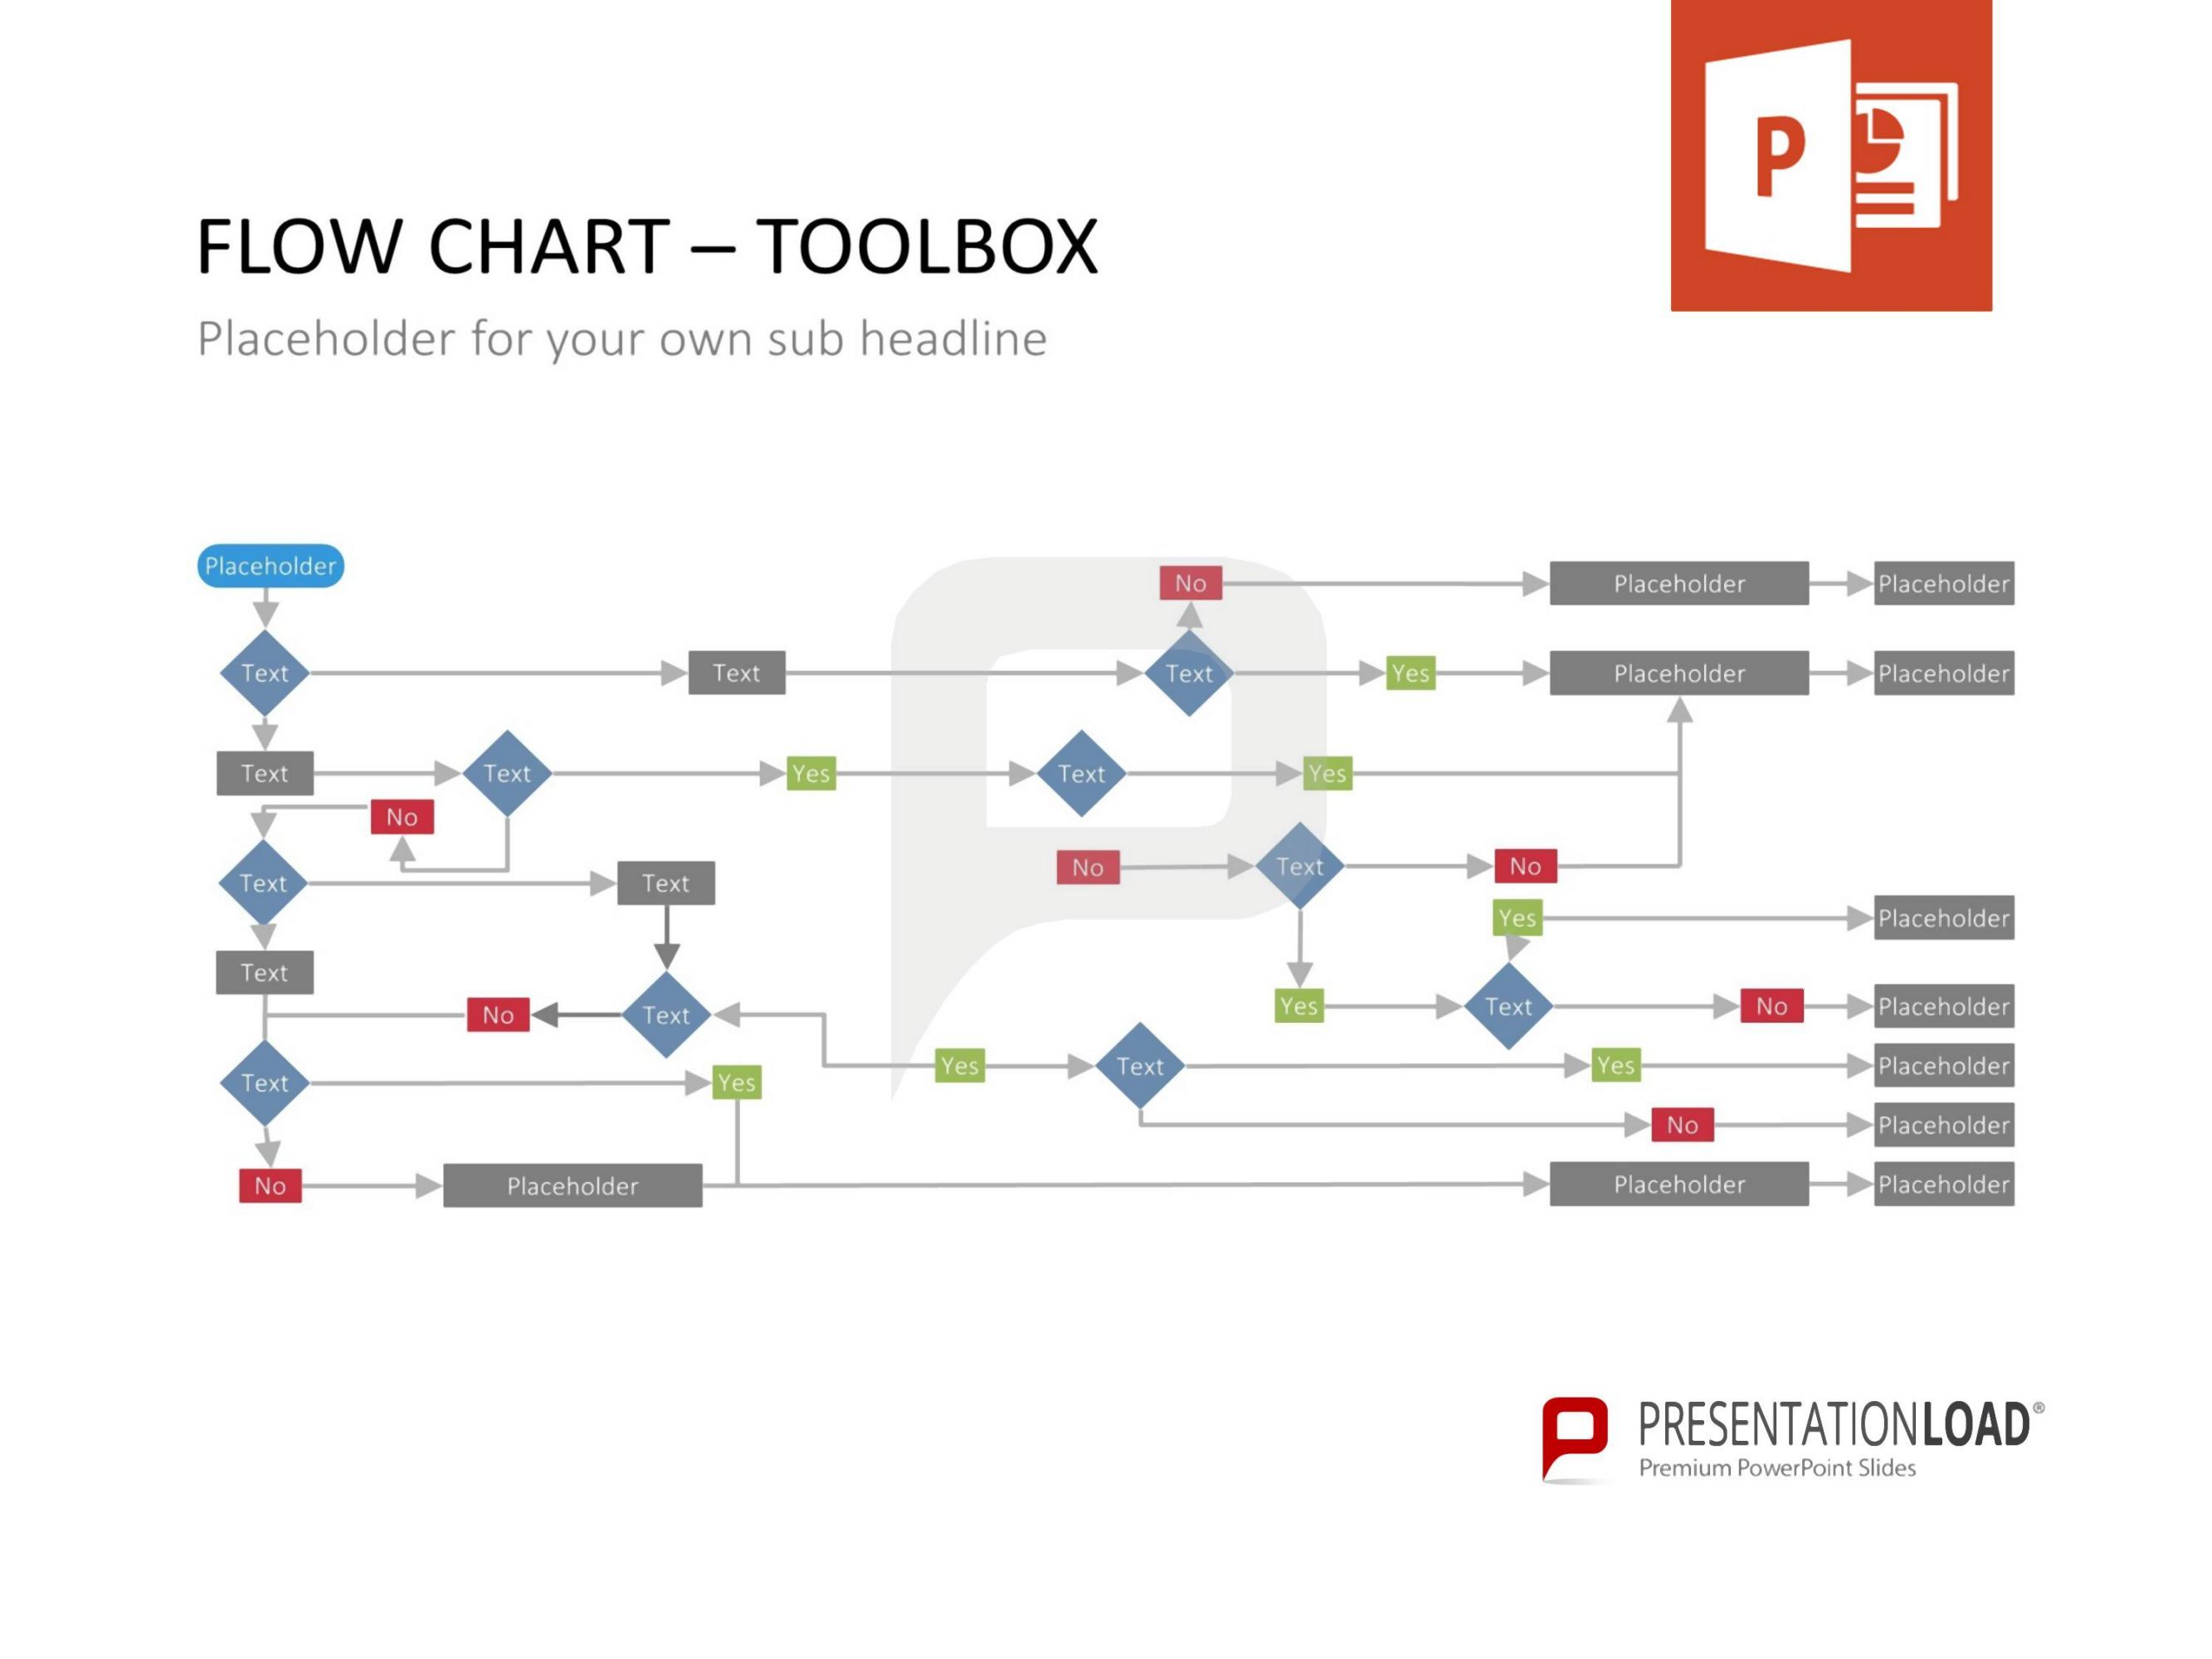 Our new flow chart toolbox contains a broad selection of pre our new flow chart toolbox contains a broad selection of pre designed slides for powerpoint geenschuldenfo Image collections